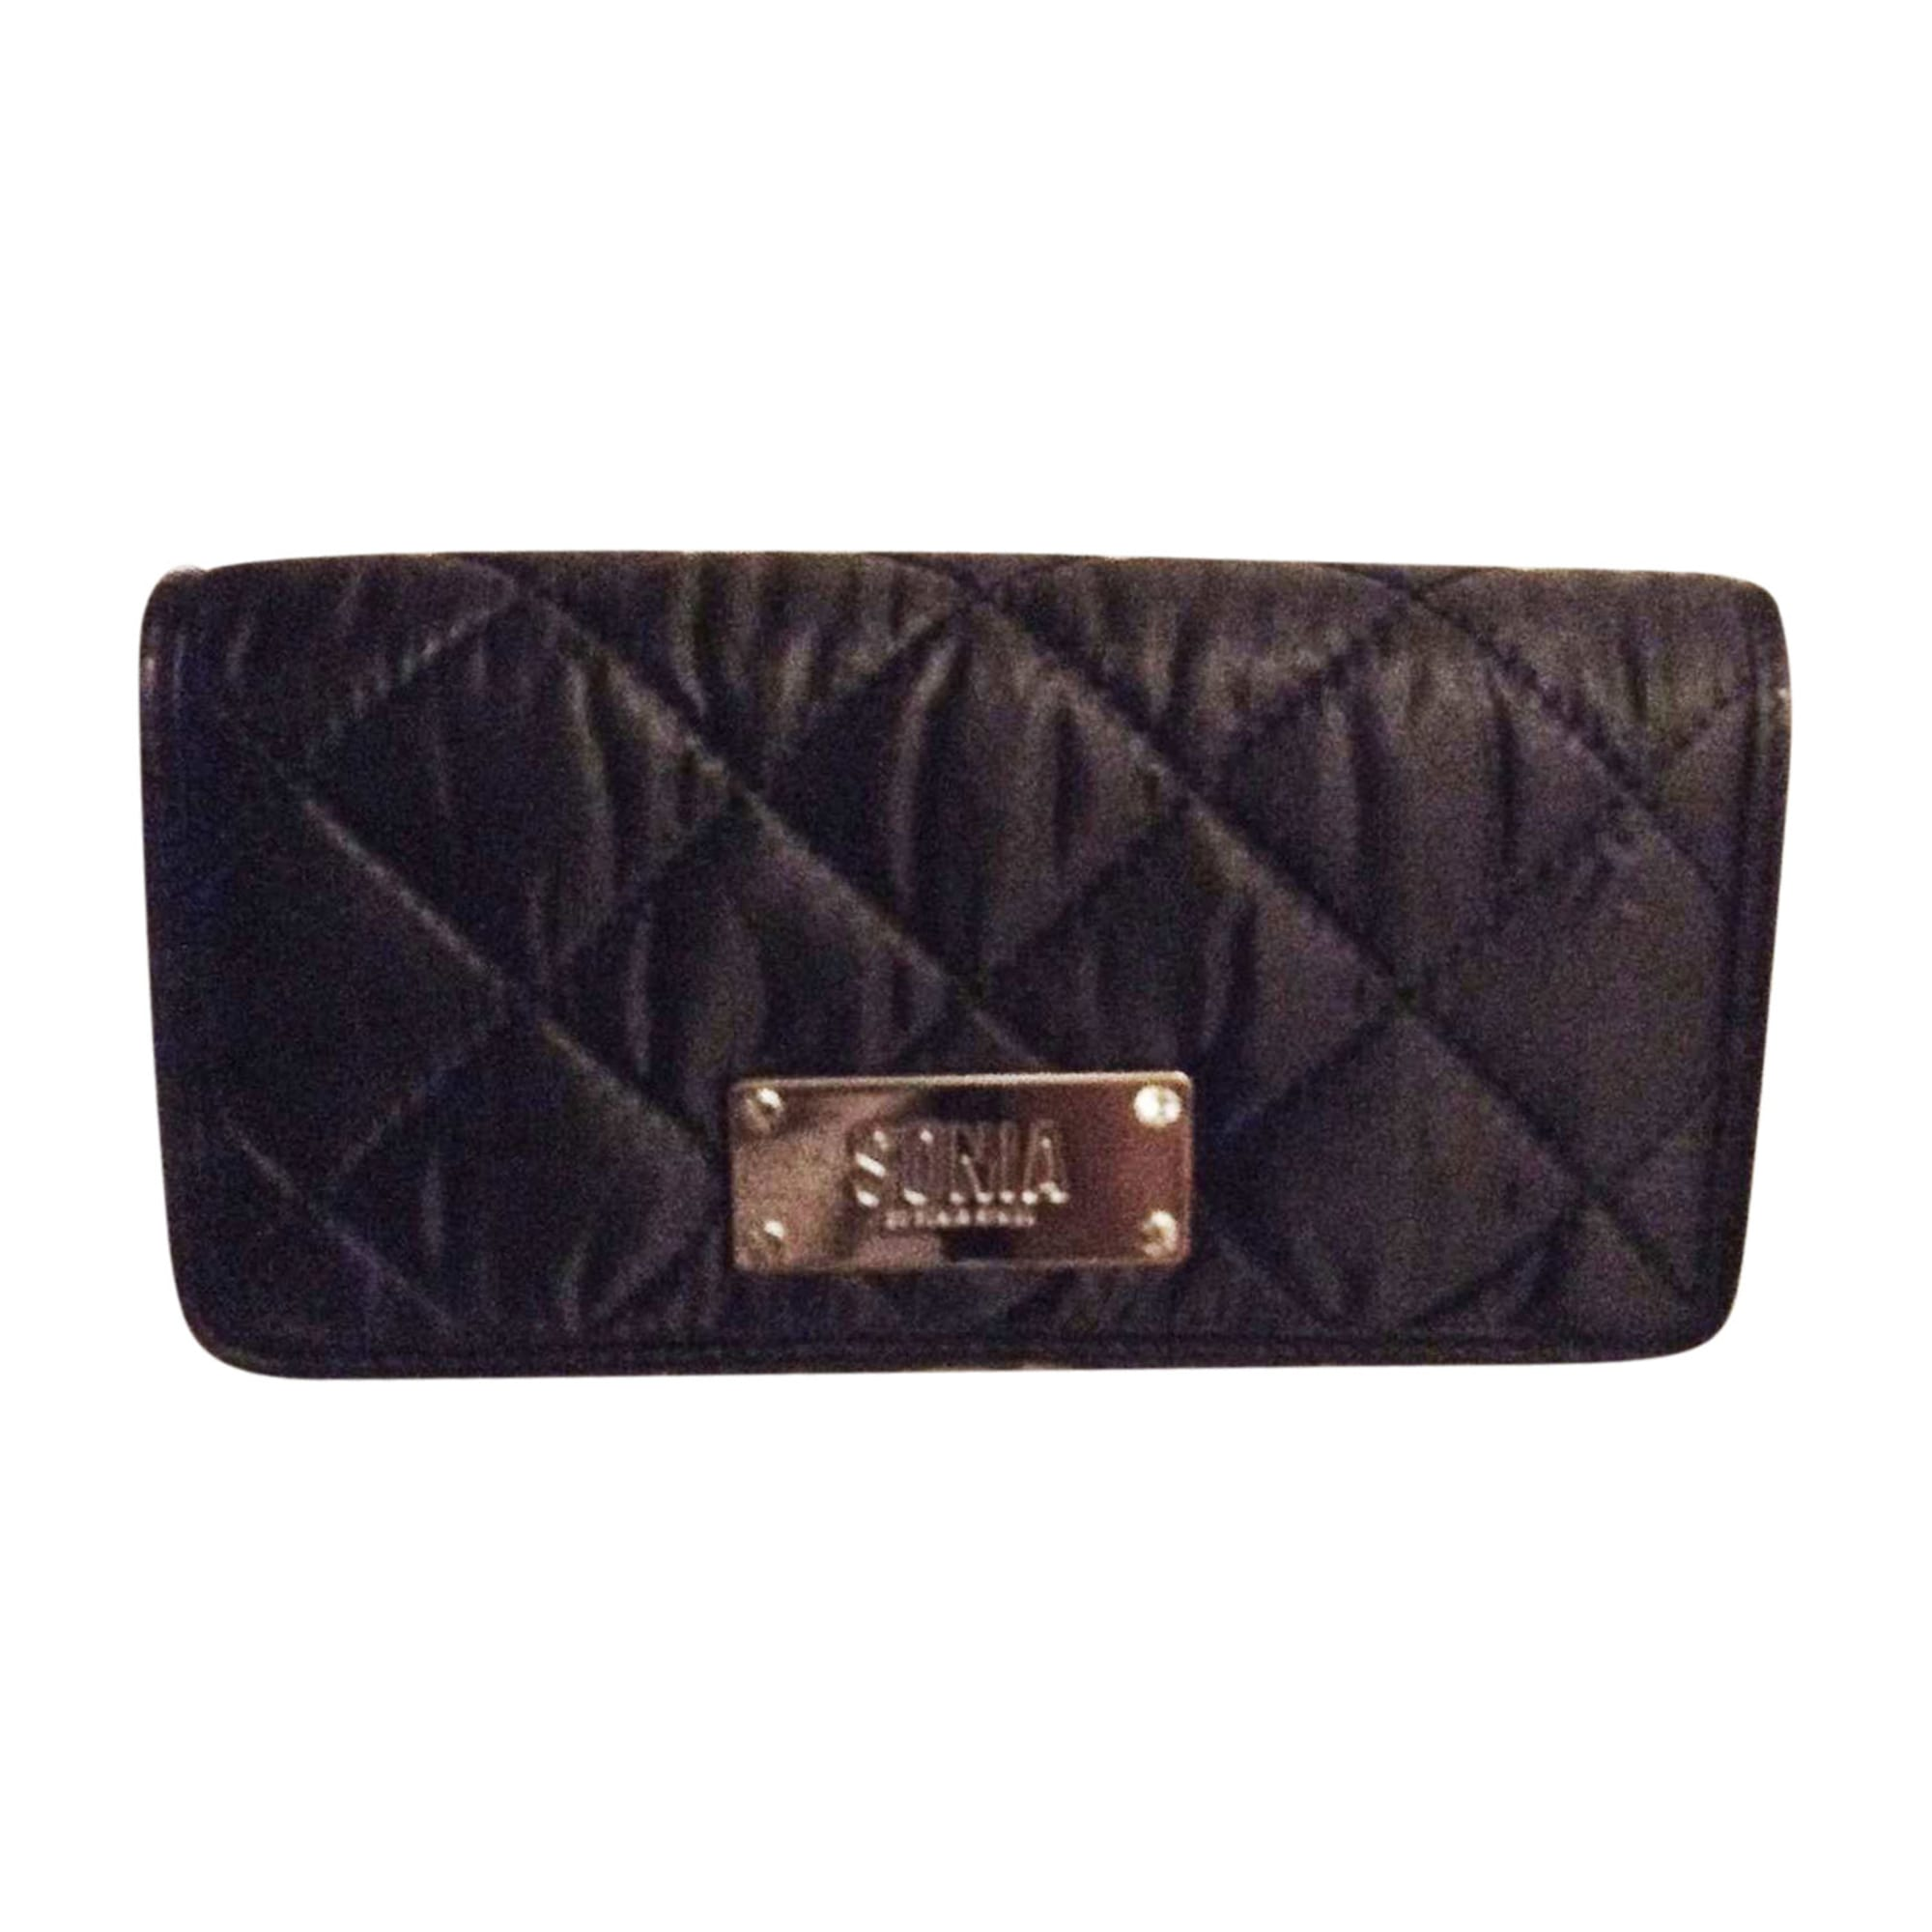 Portefeuille SONIA BY SONIA RYKIEL Noir